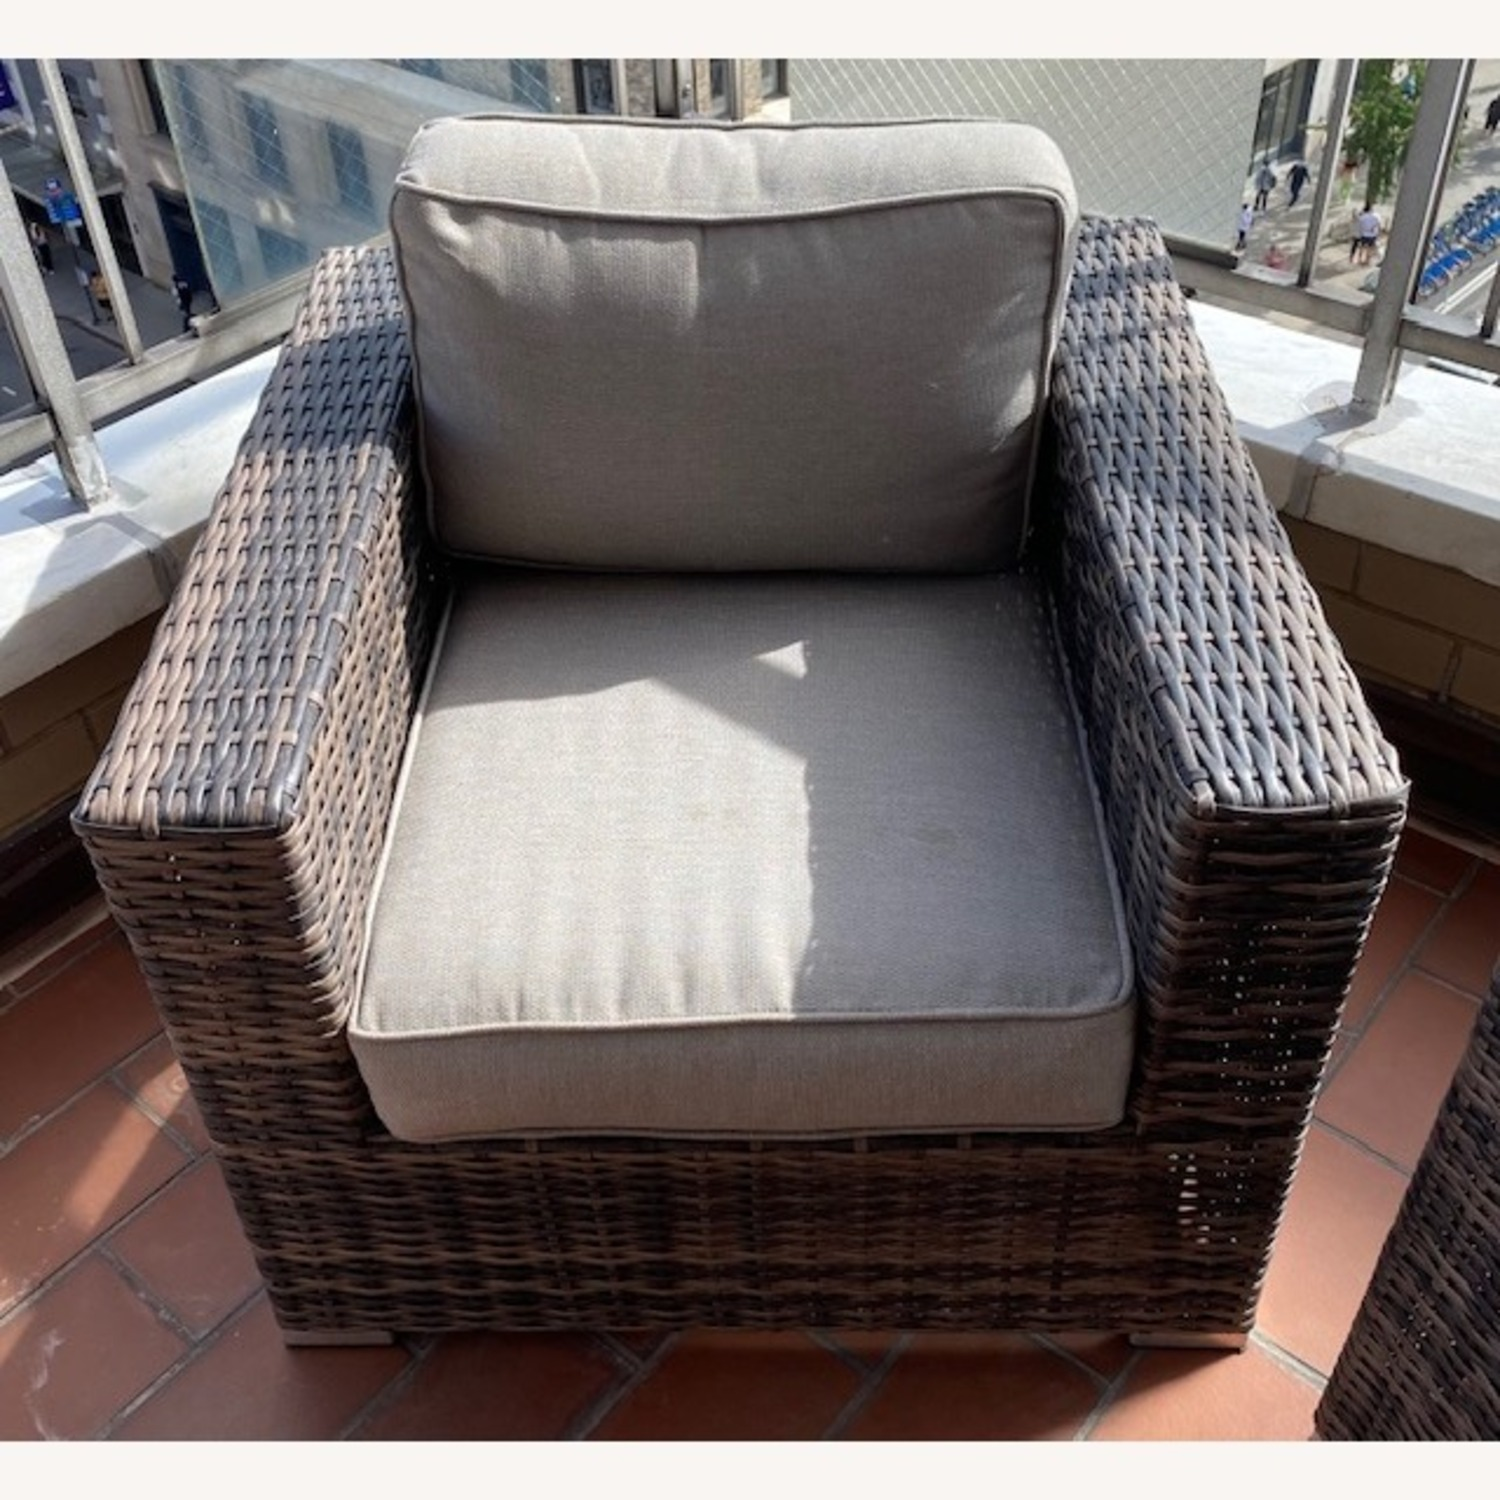 Modern Outdoor Lounge Chairs - image-2